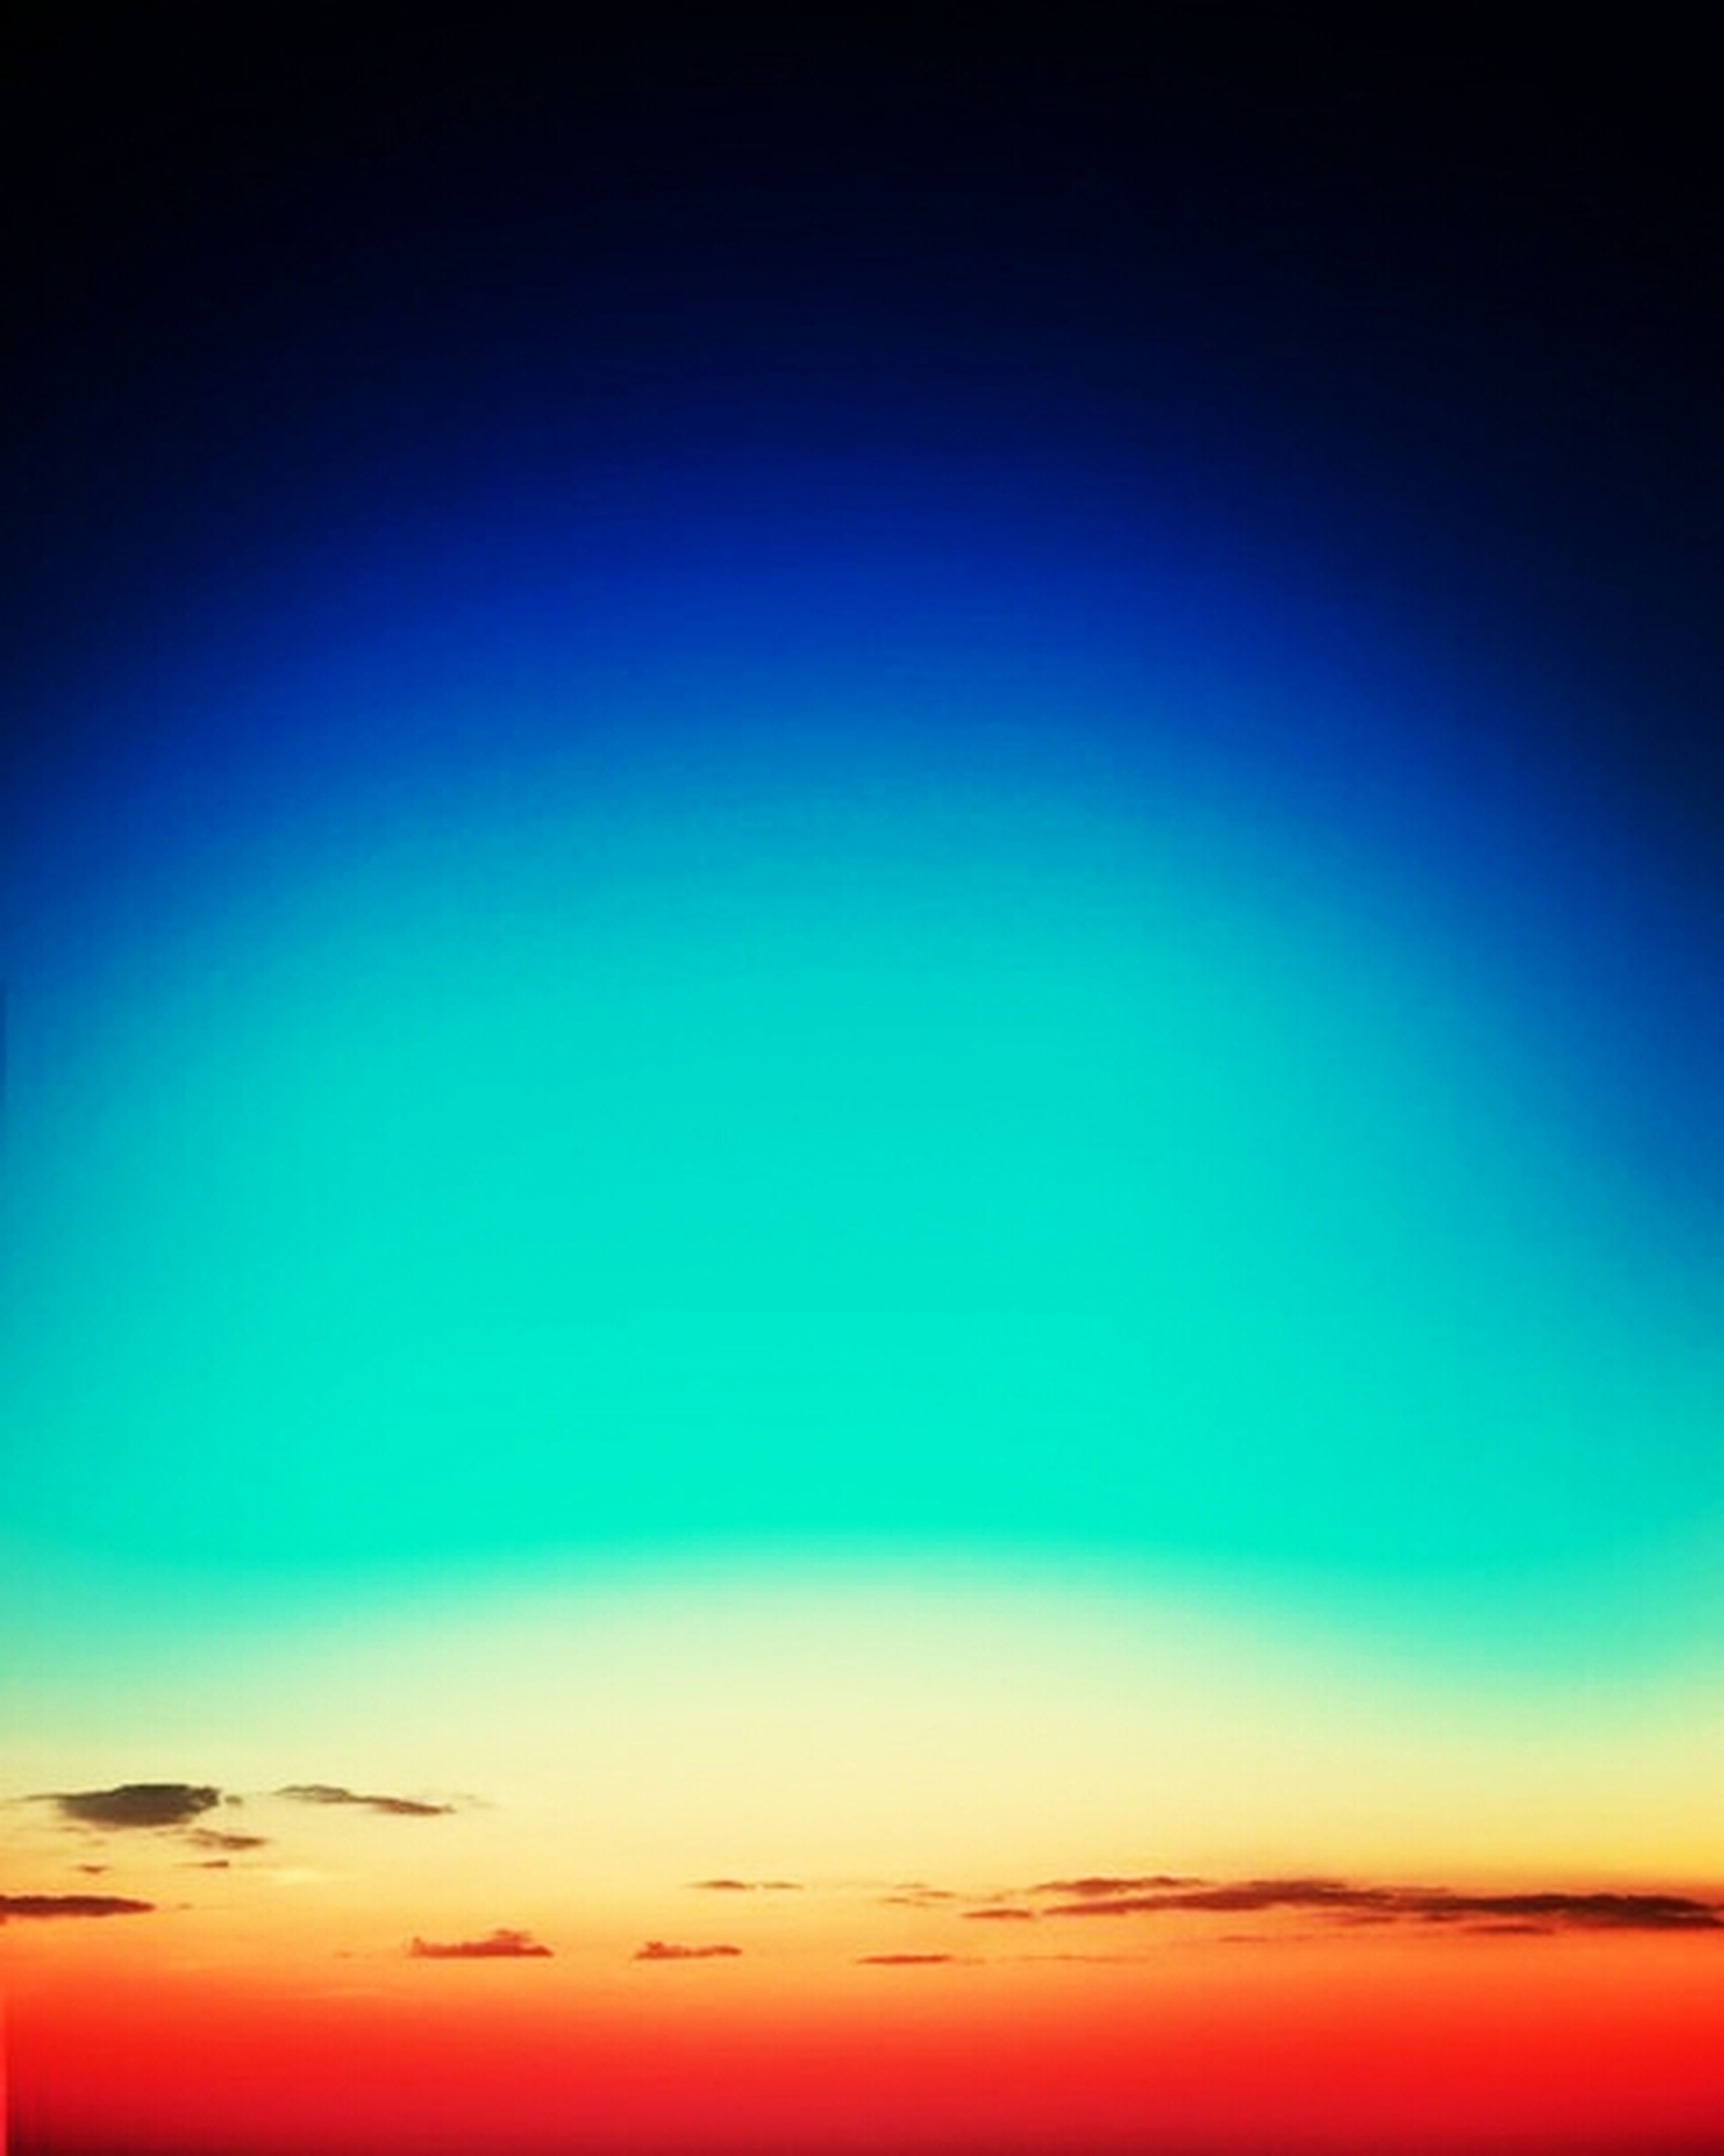 blue, scenics, copy space, sunset, beauty in nature, low angle view, tranquility, tranquil scene, sky, nature, sky only, backgrounds, idyllic, orange color, majestic, dusk, no people, outdoors, clear sky, full frame